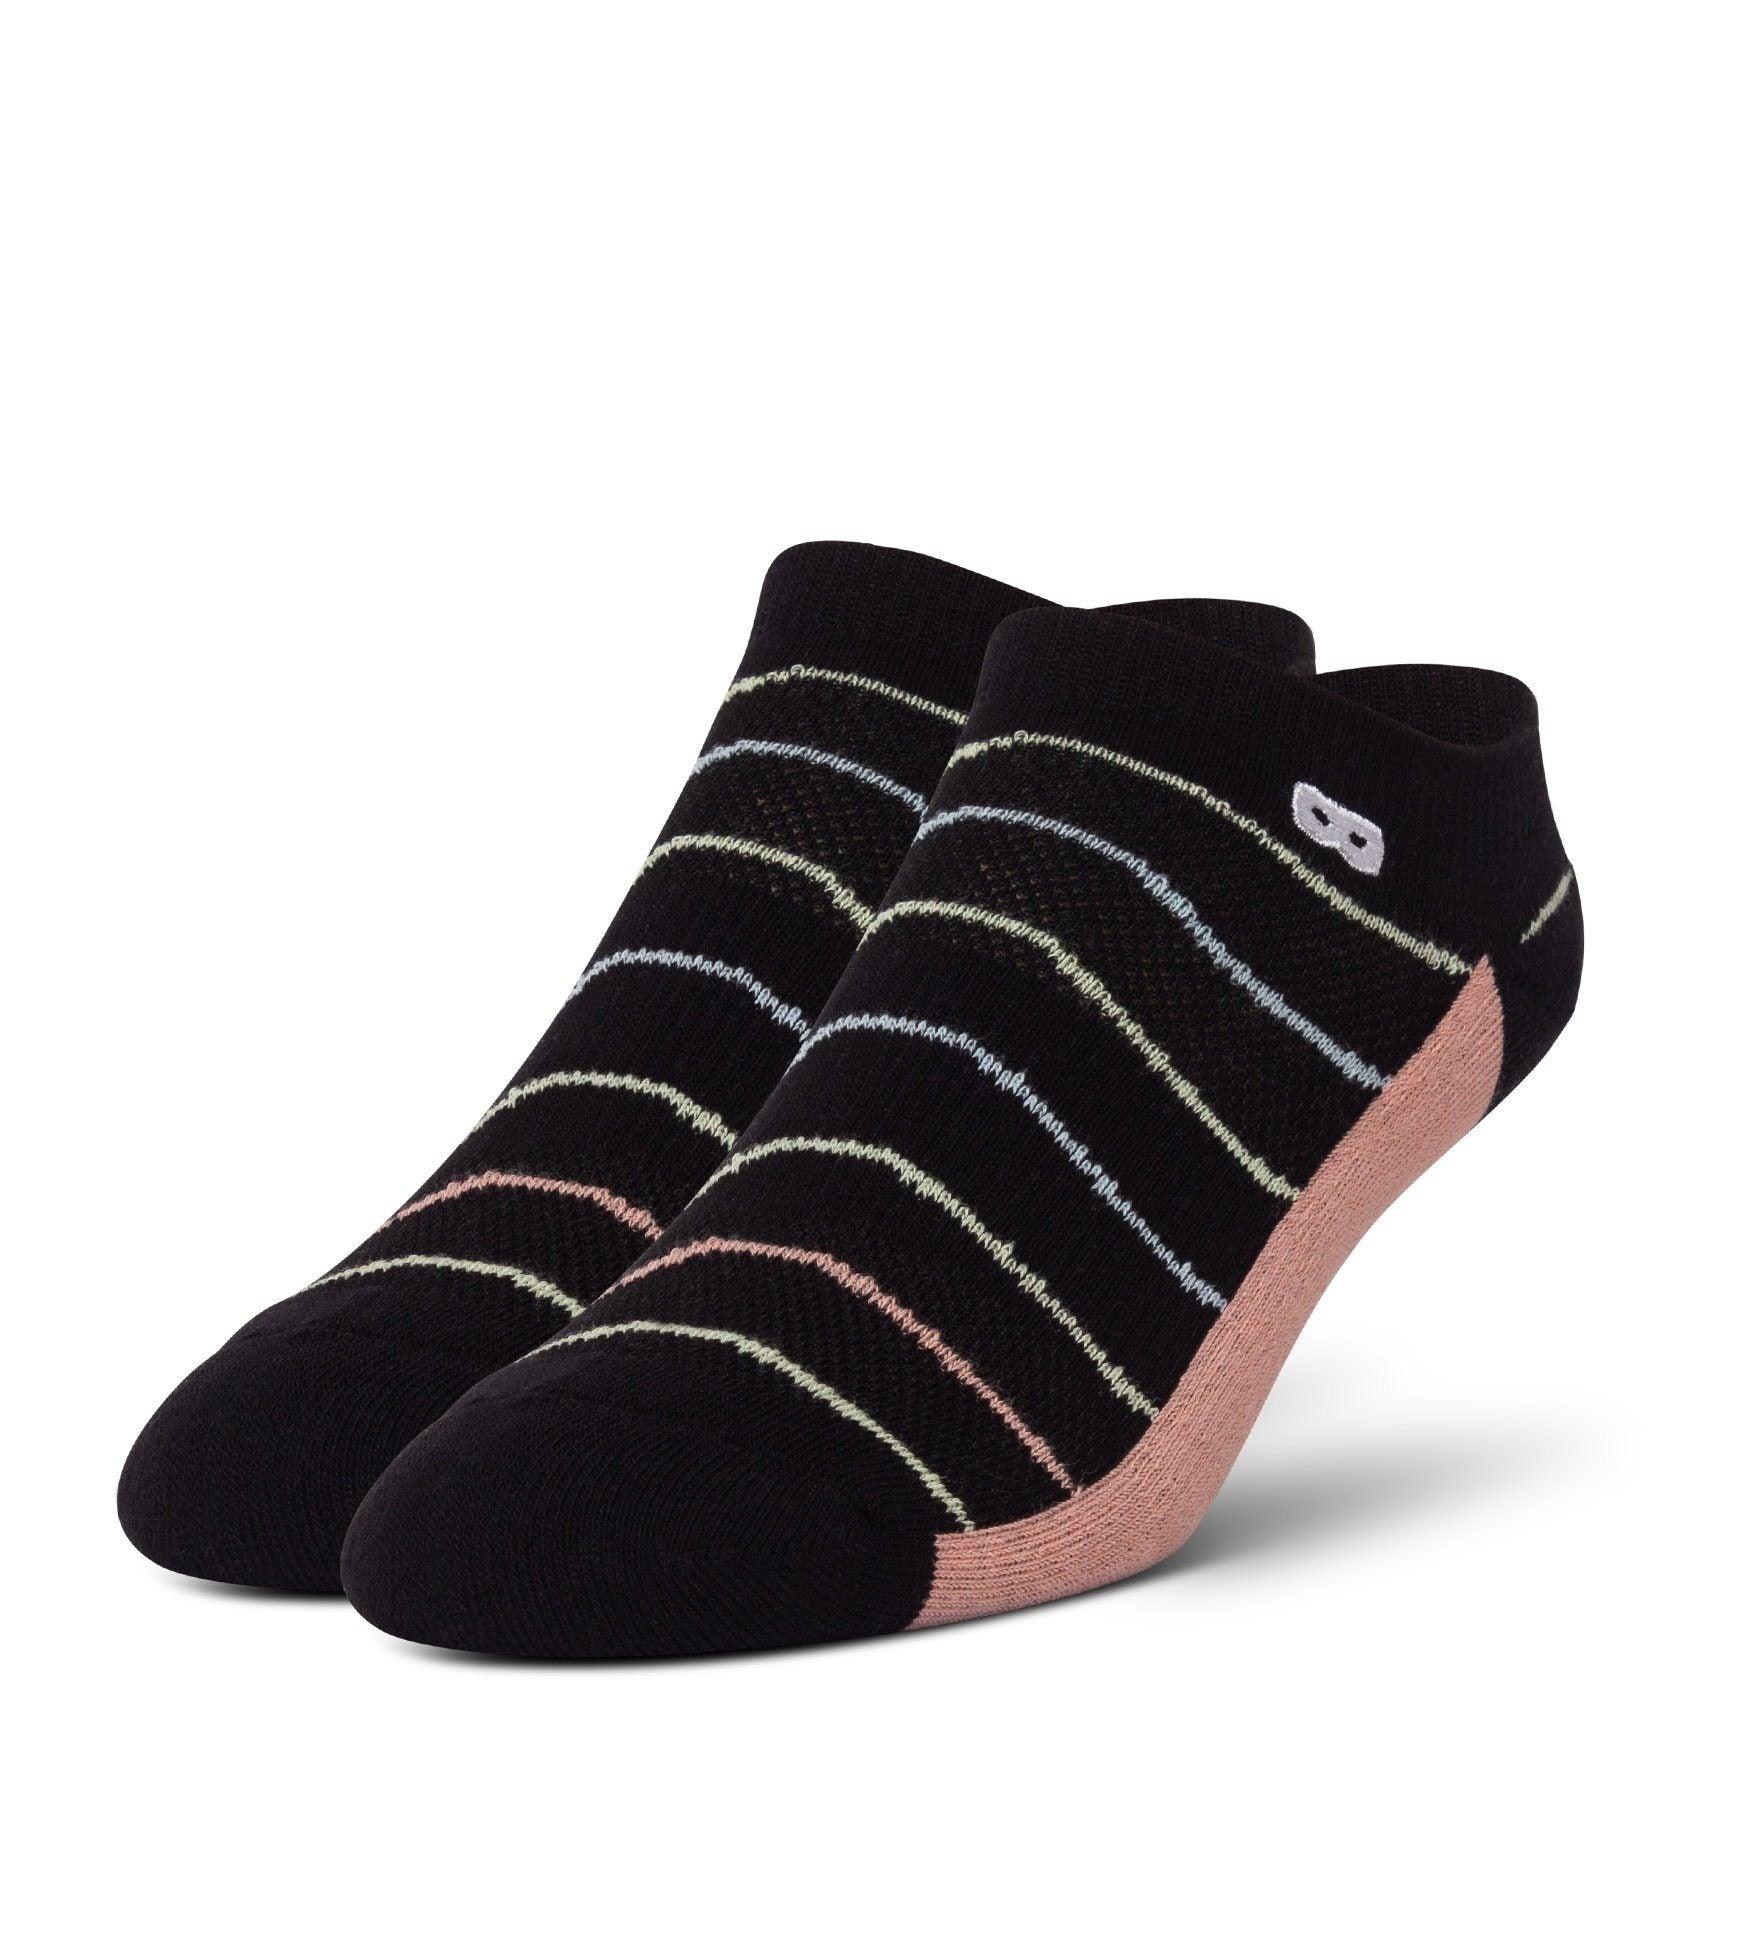 Dana Scully Women's Cushion Low-Cut Socks 3 Pack Black With Colored Stripes